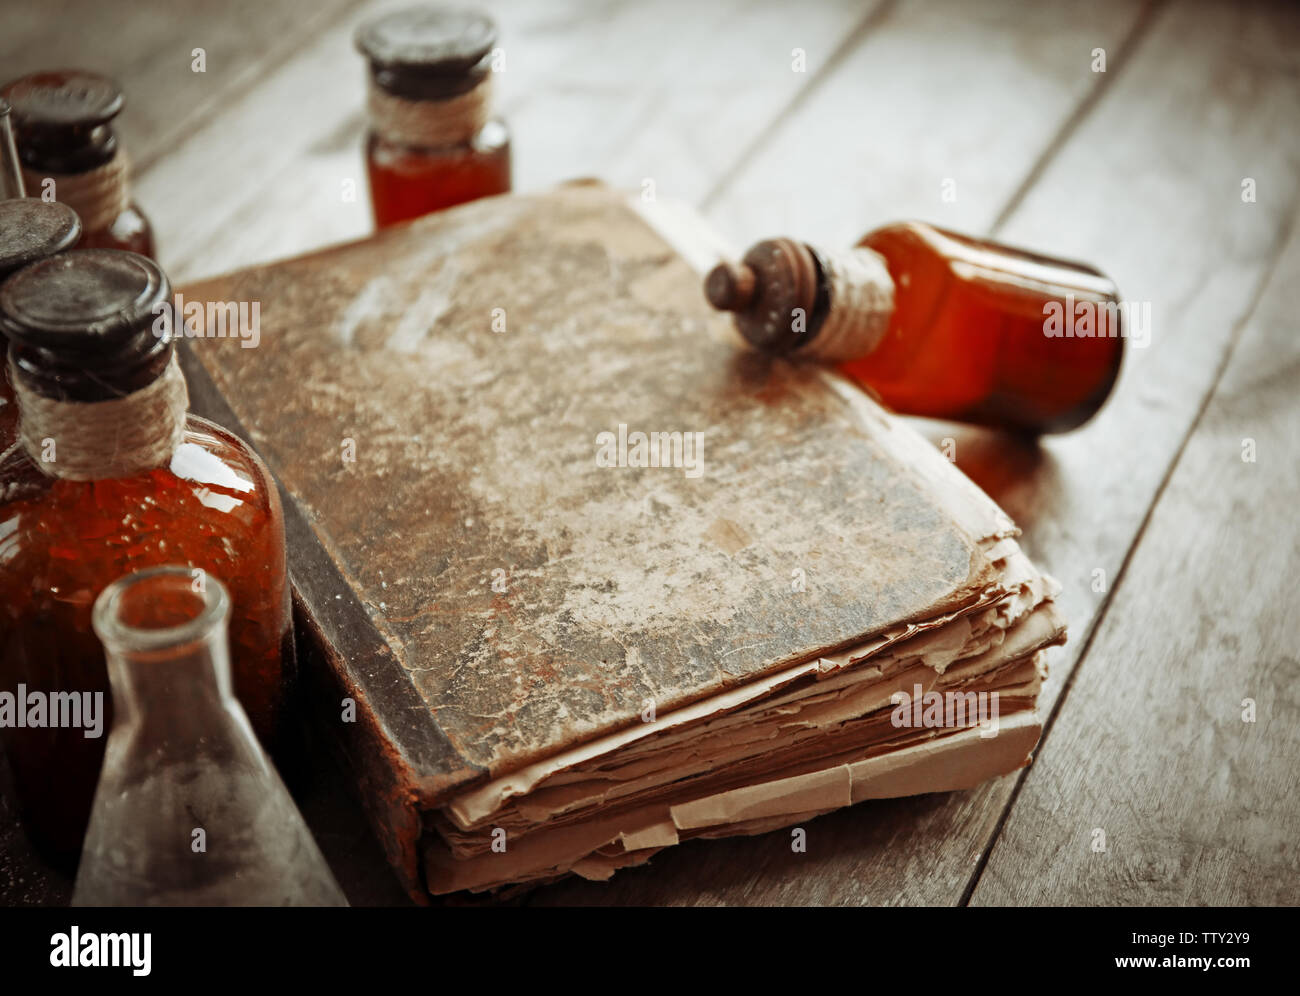 Old book with glass bottles on wooden background, closeup - Stock Image